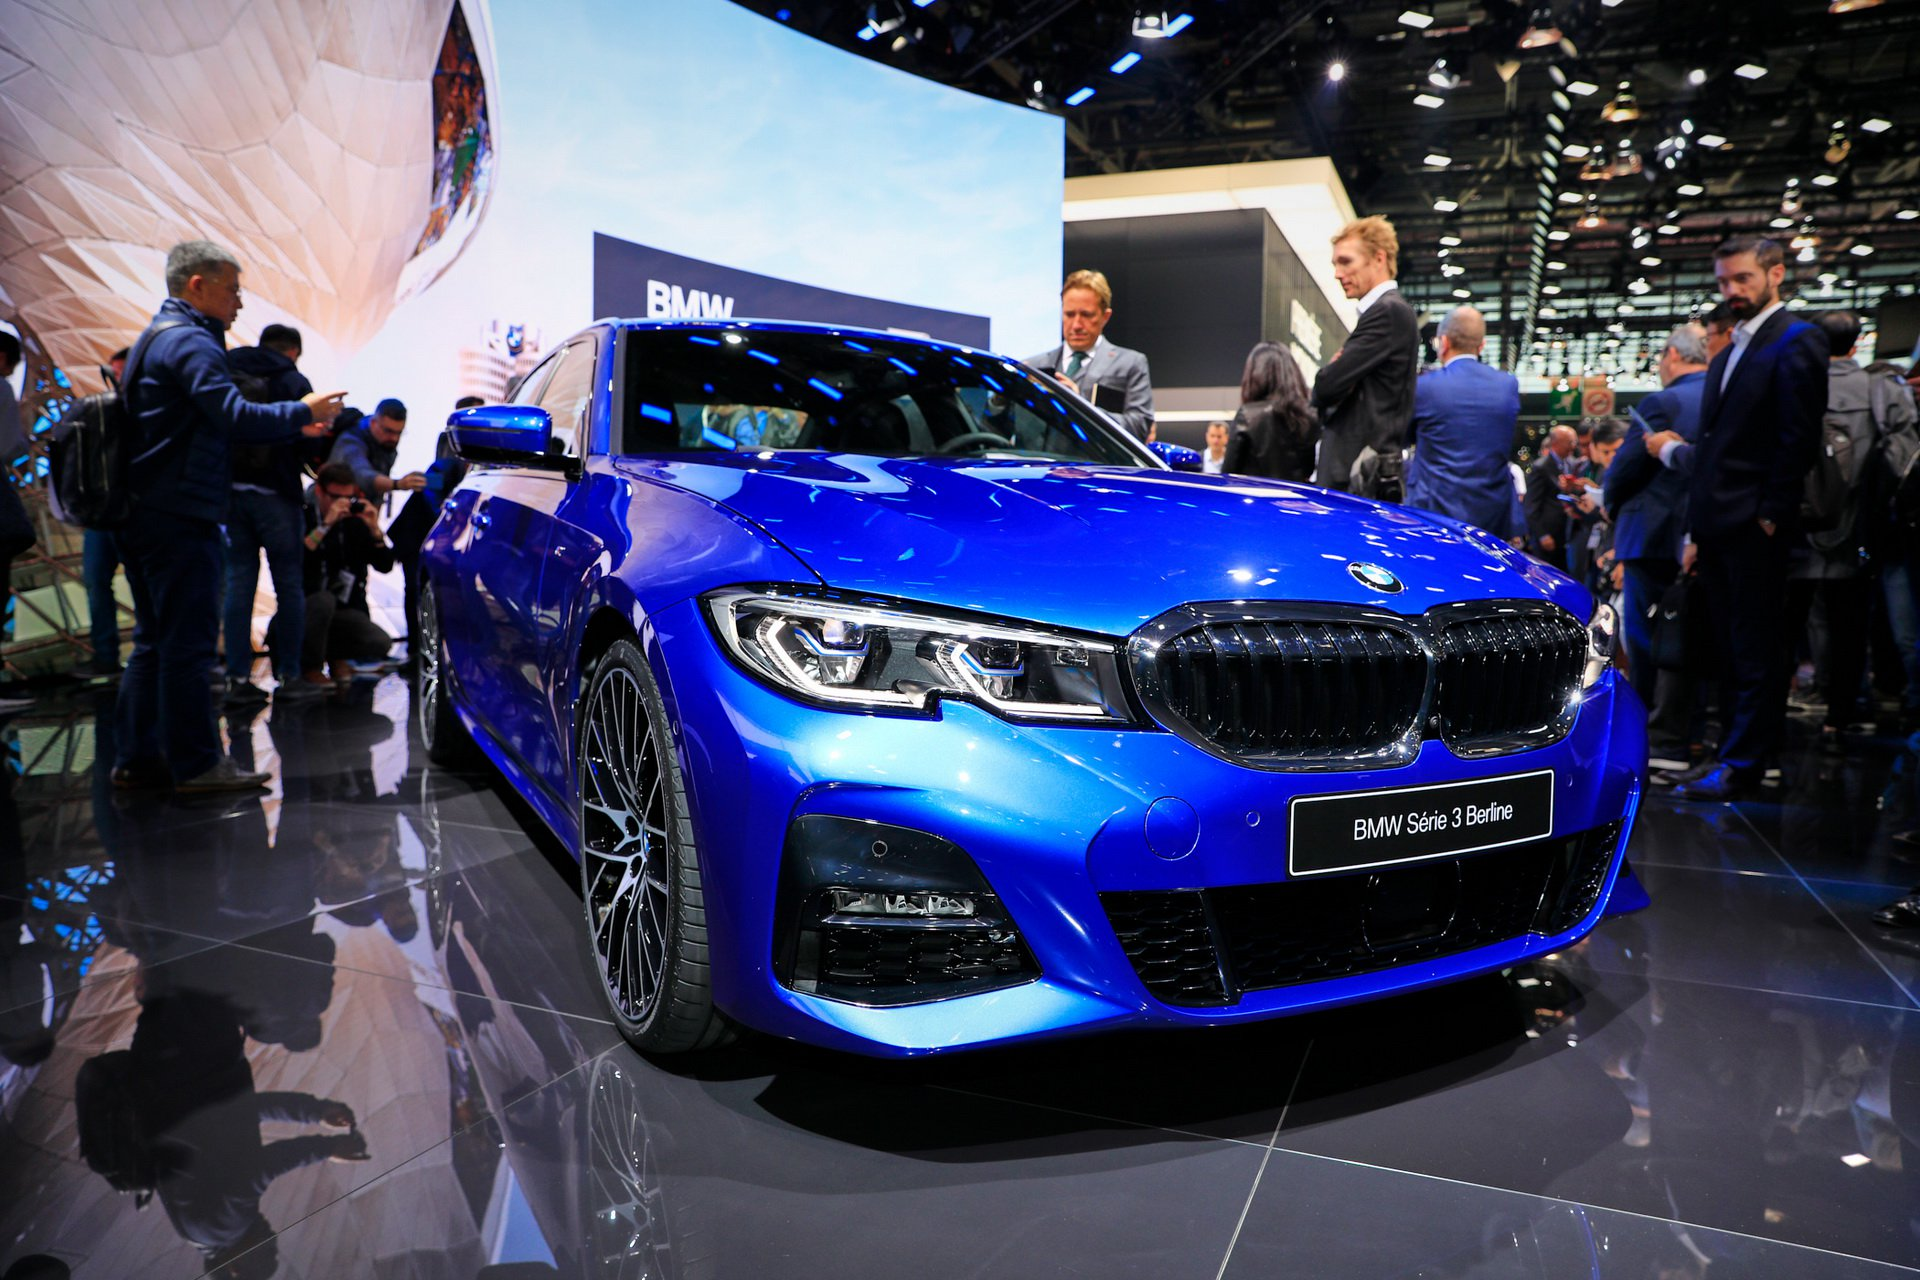 2019-bmw-3-series-ra-mat-13.jpg